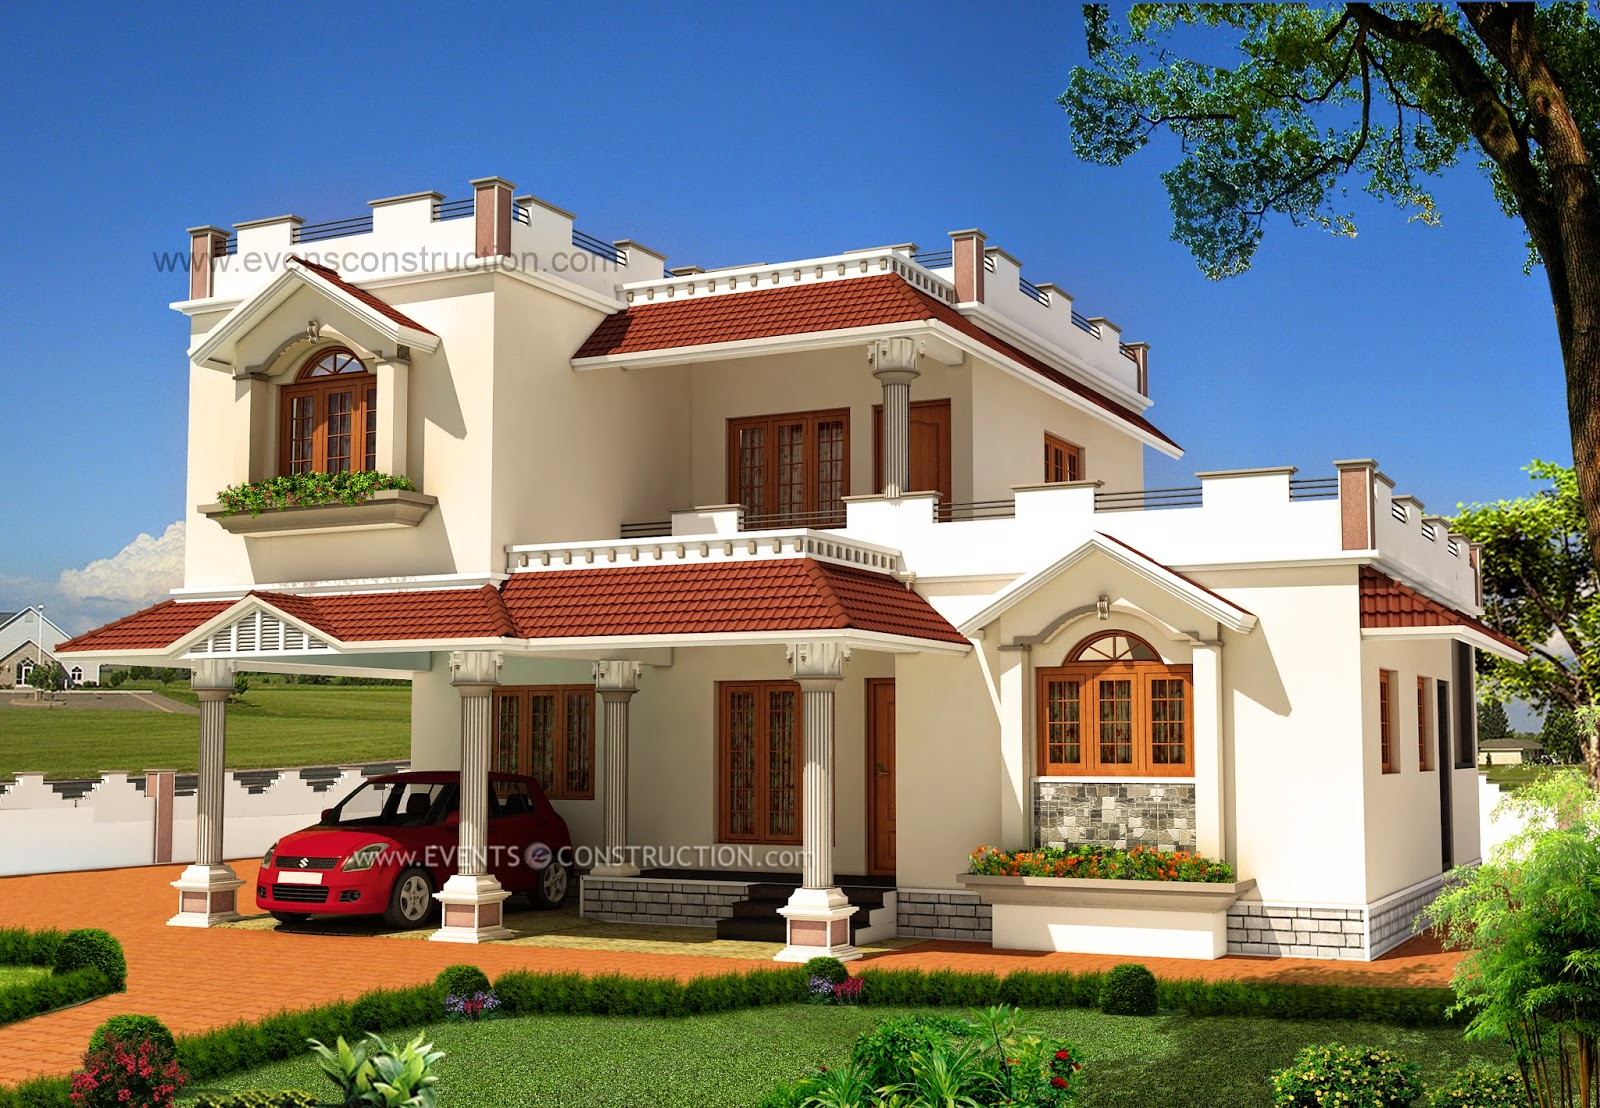 Evens construction pvt ltd september 2014 for Best exterior home designs in india